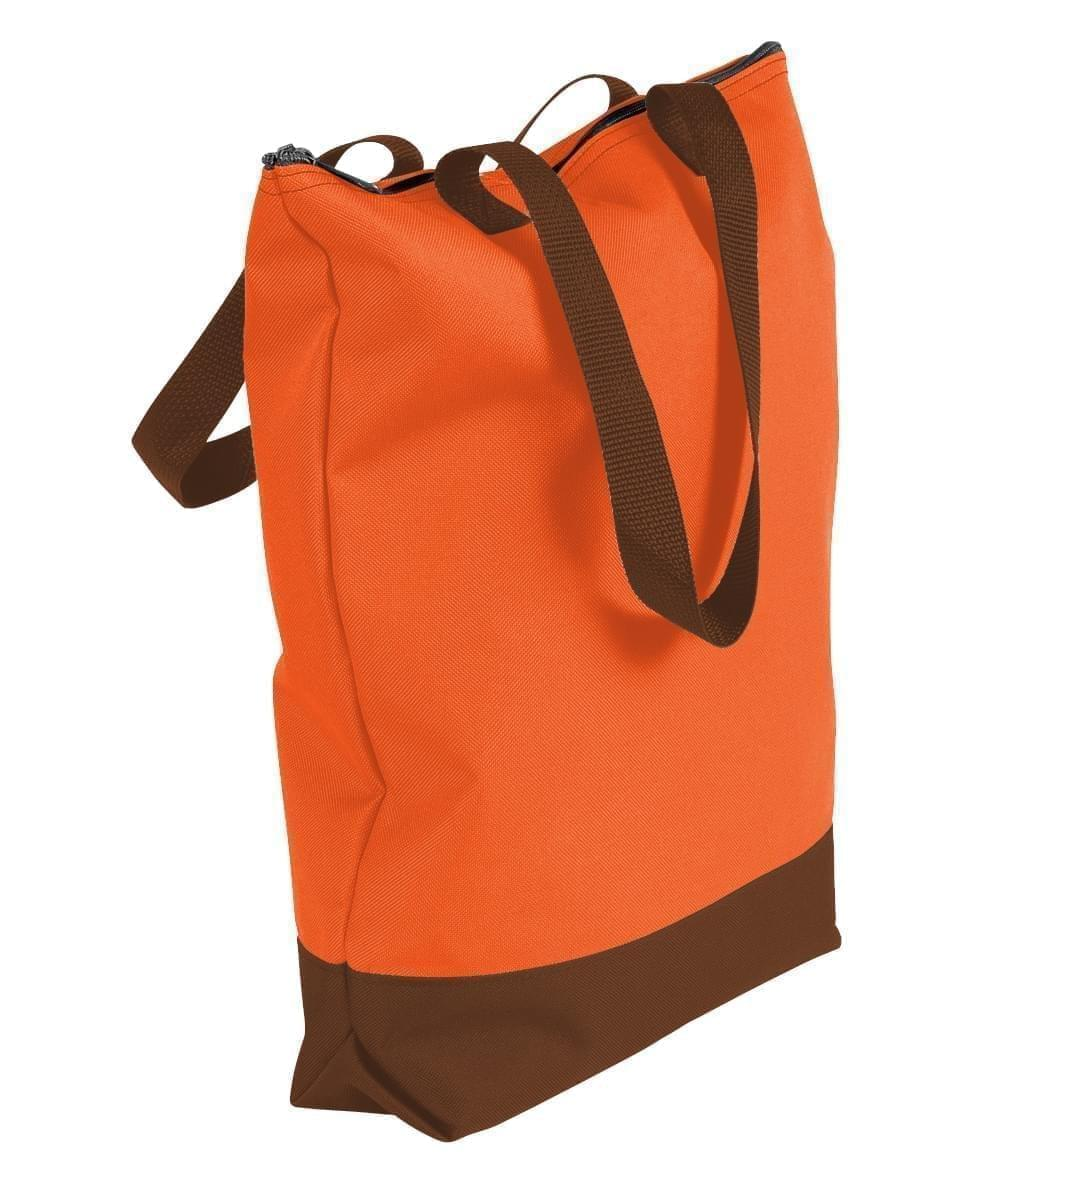 USA Made Poly Notebook Tote Bags, Orange-Brown, 1AAMX1UAXS